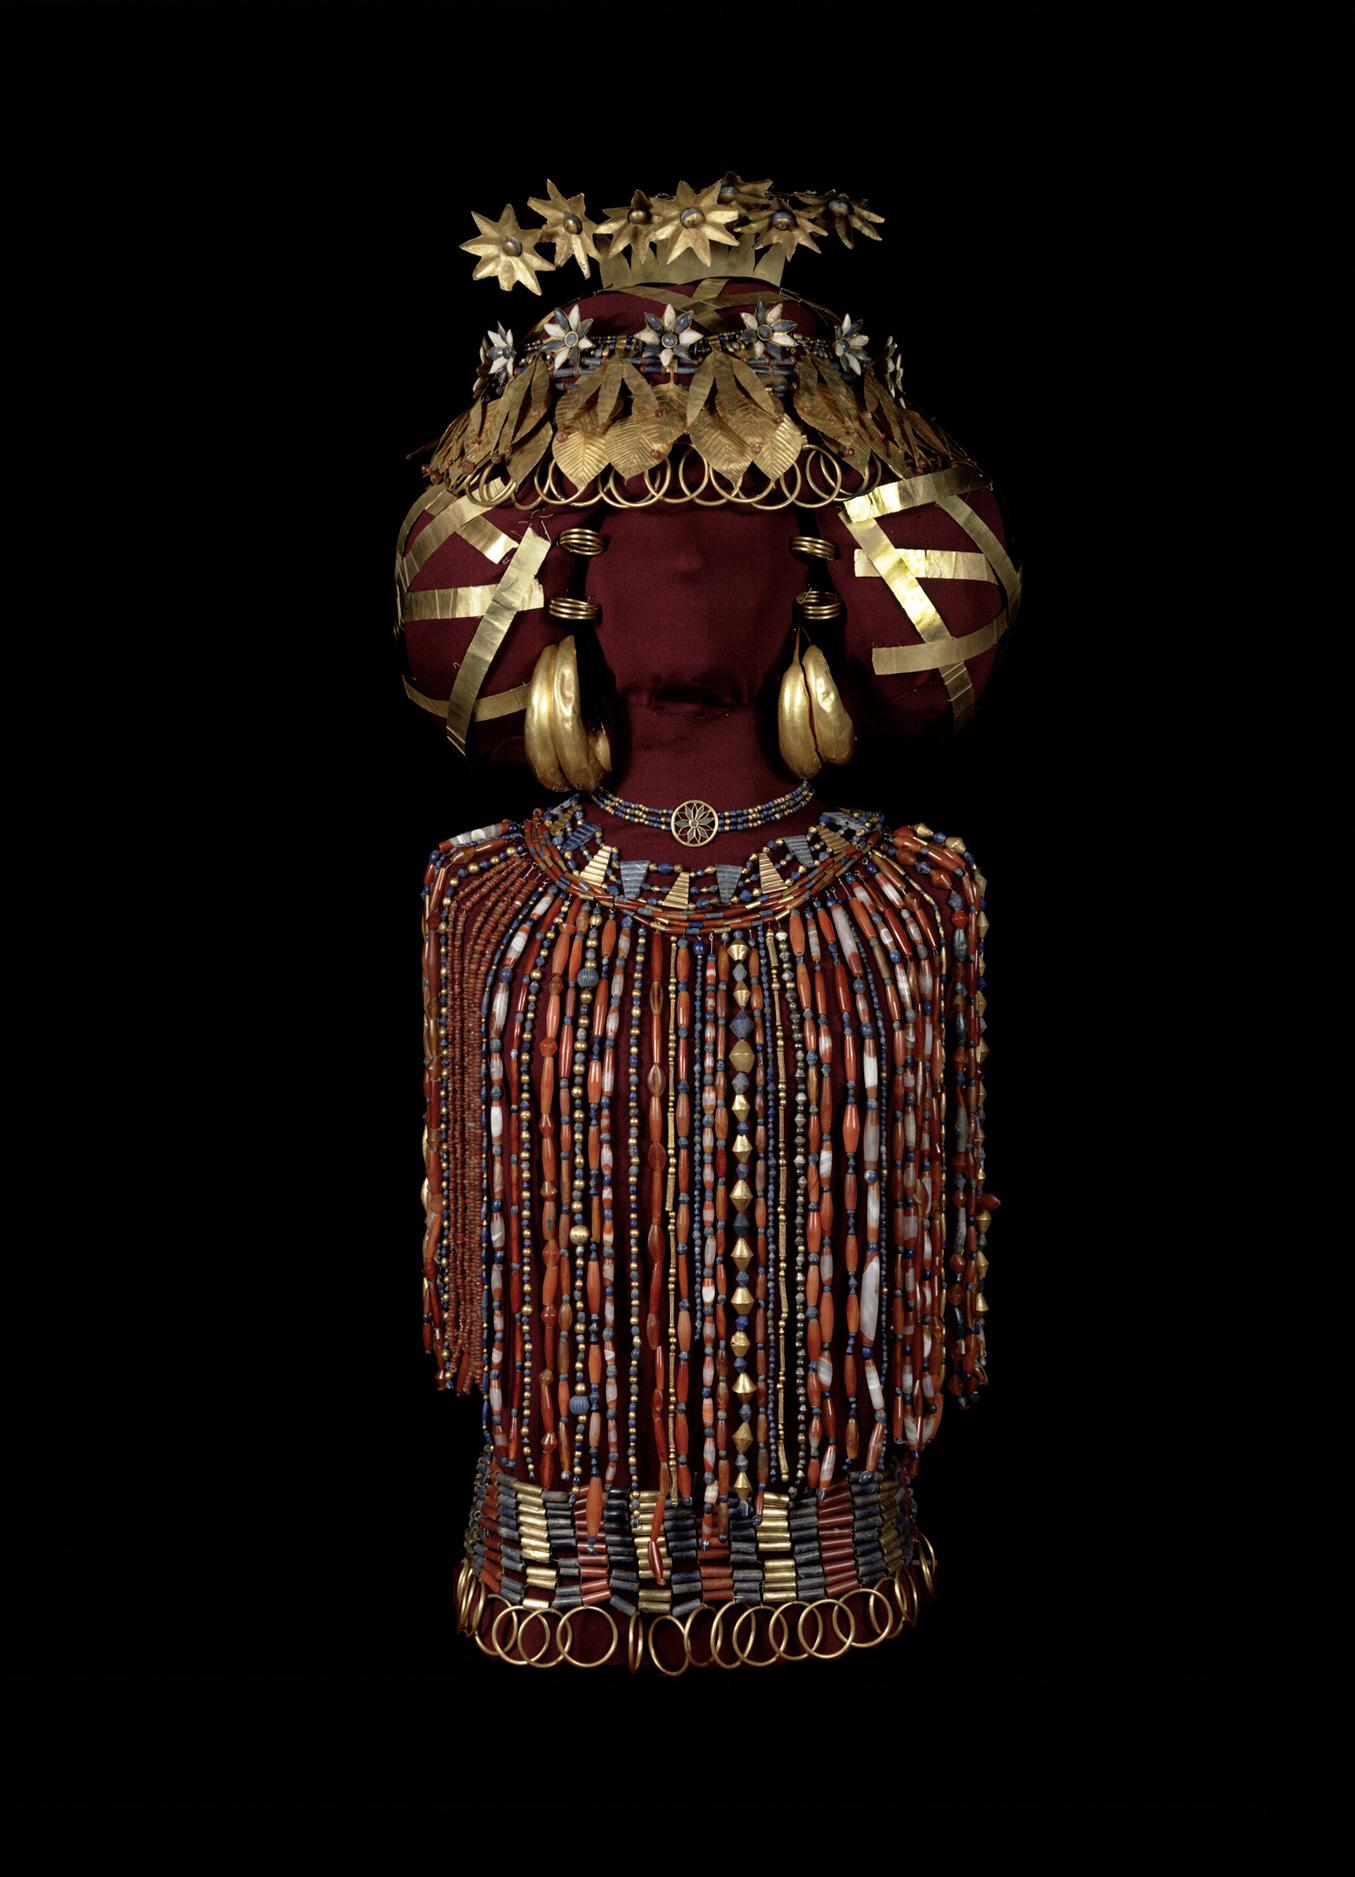 Queen Pu-abi's headdress and jewelry